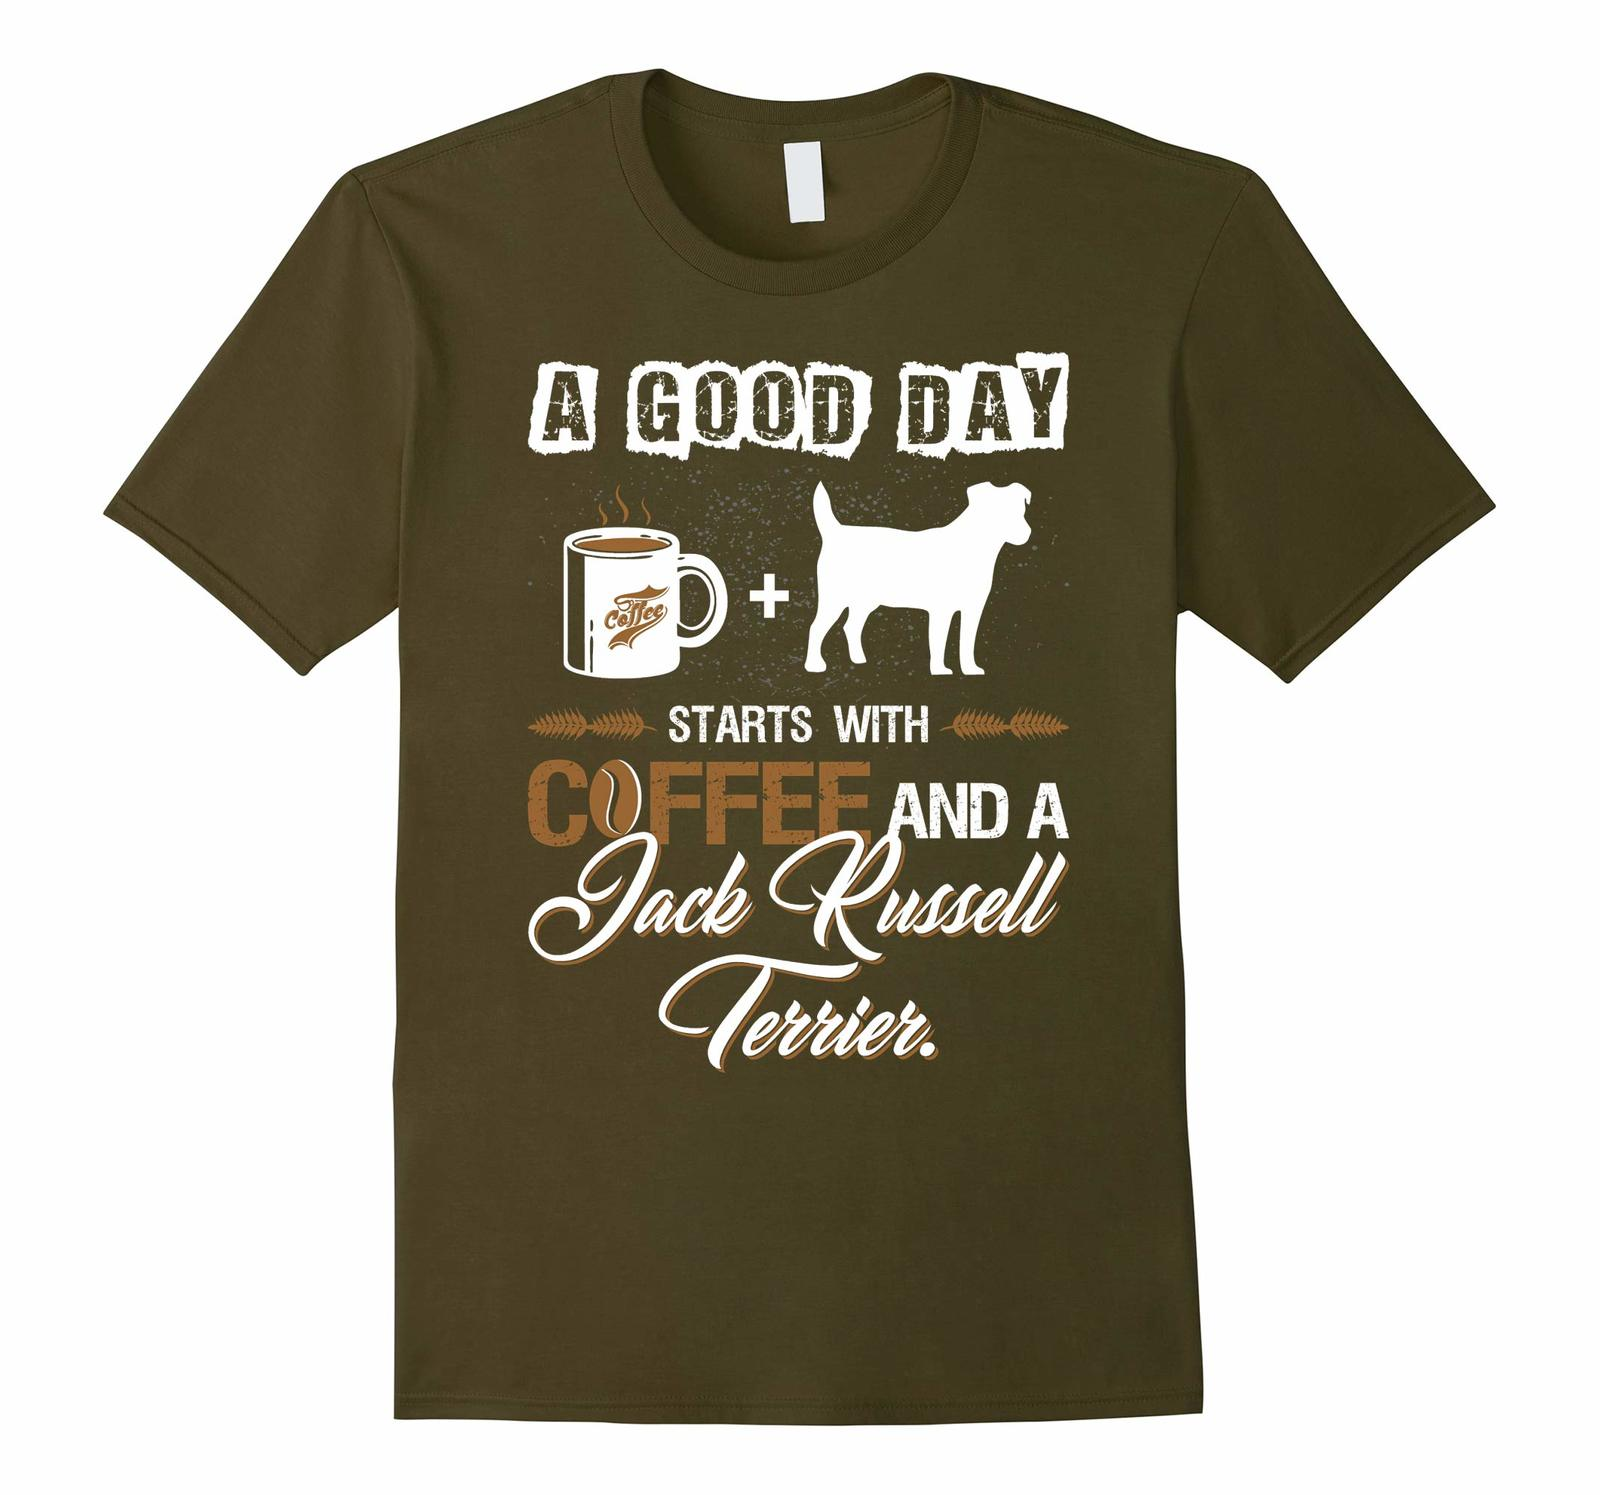 New Shirts - Good Day Starts With Coffee Jack Russell Terrier Dog Tshirt Men